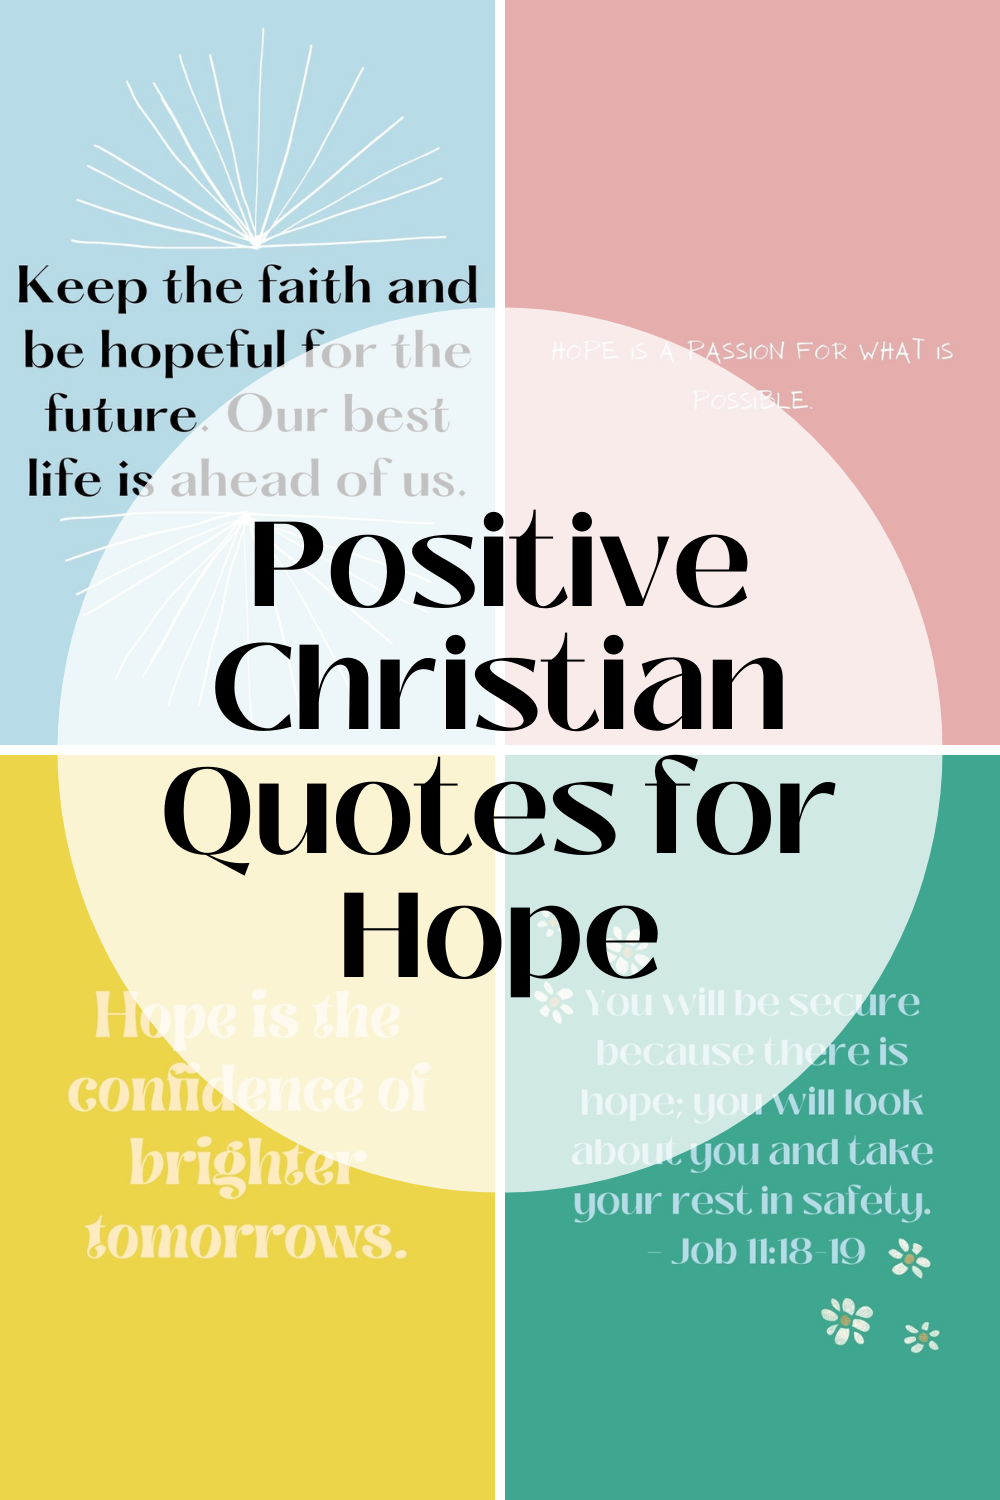 Christian Quotes on Hope